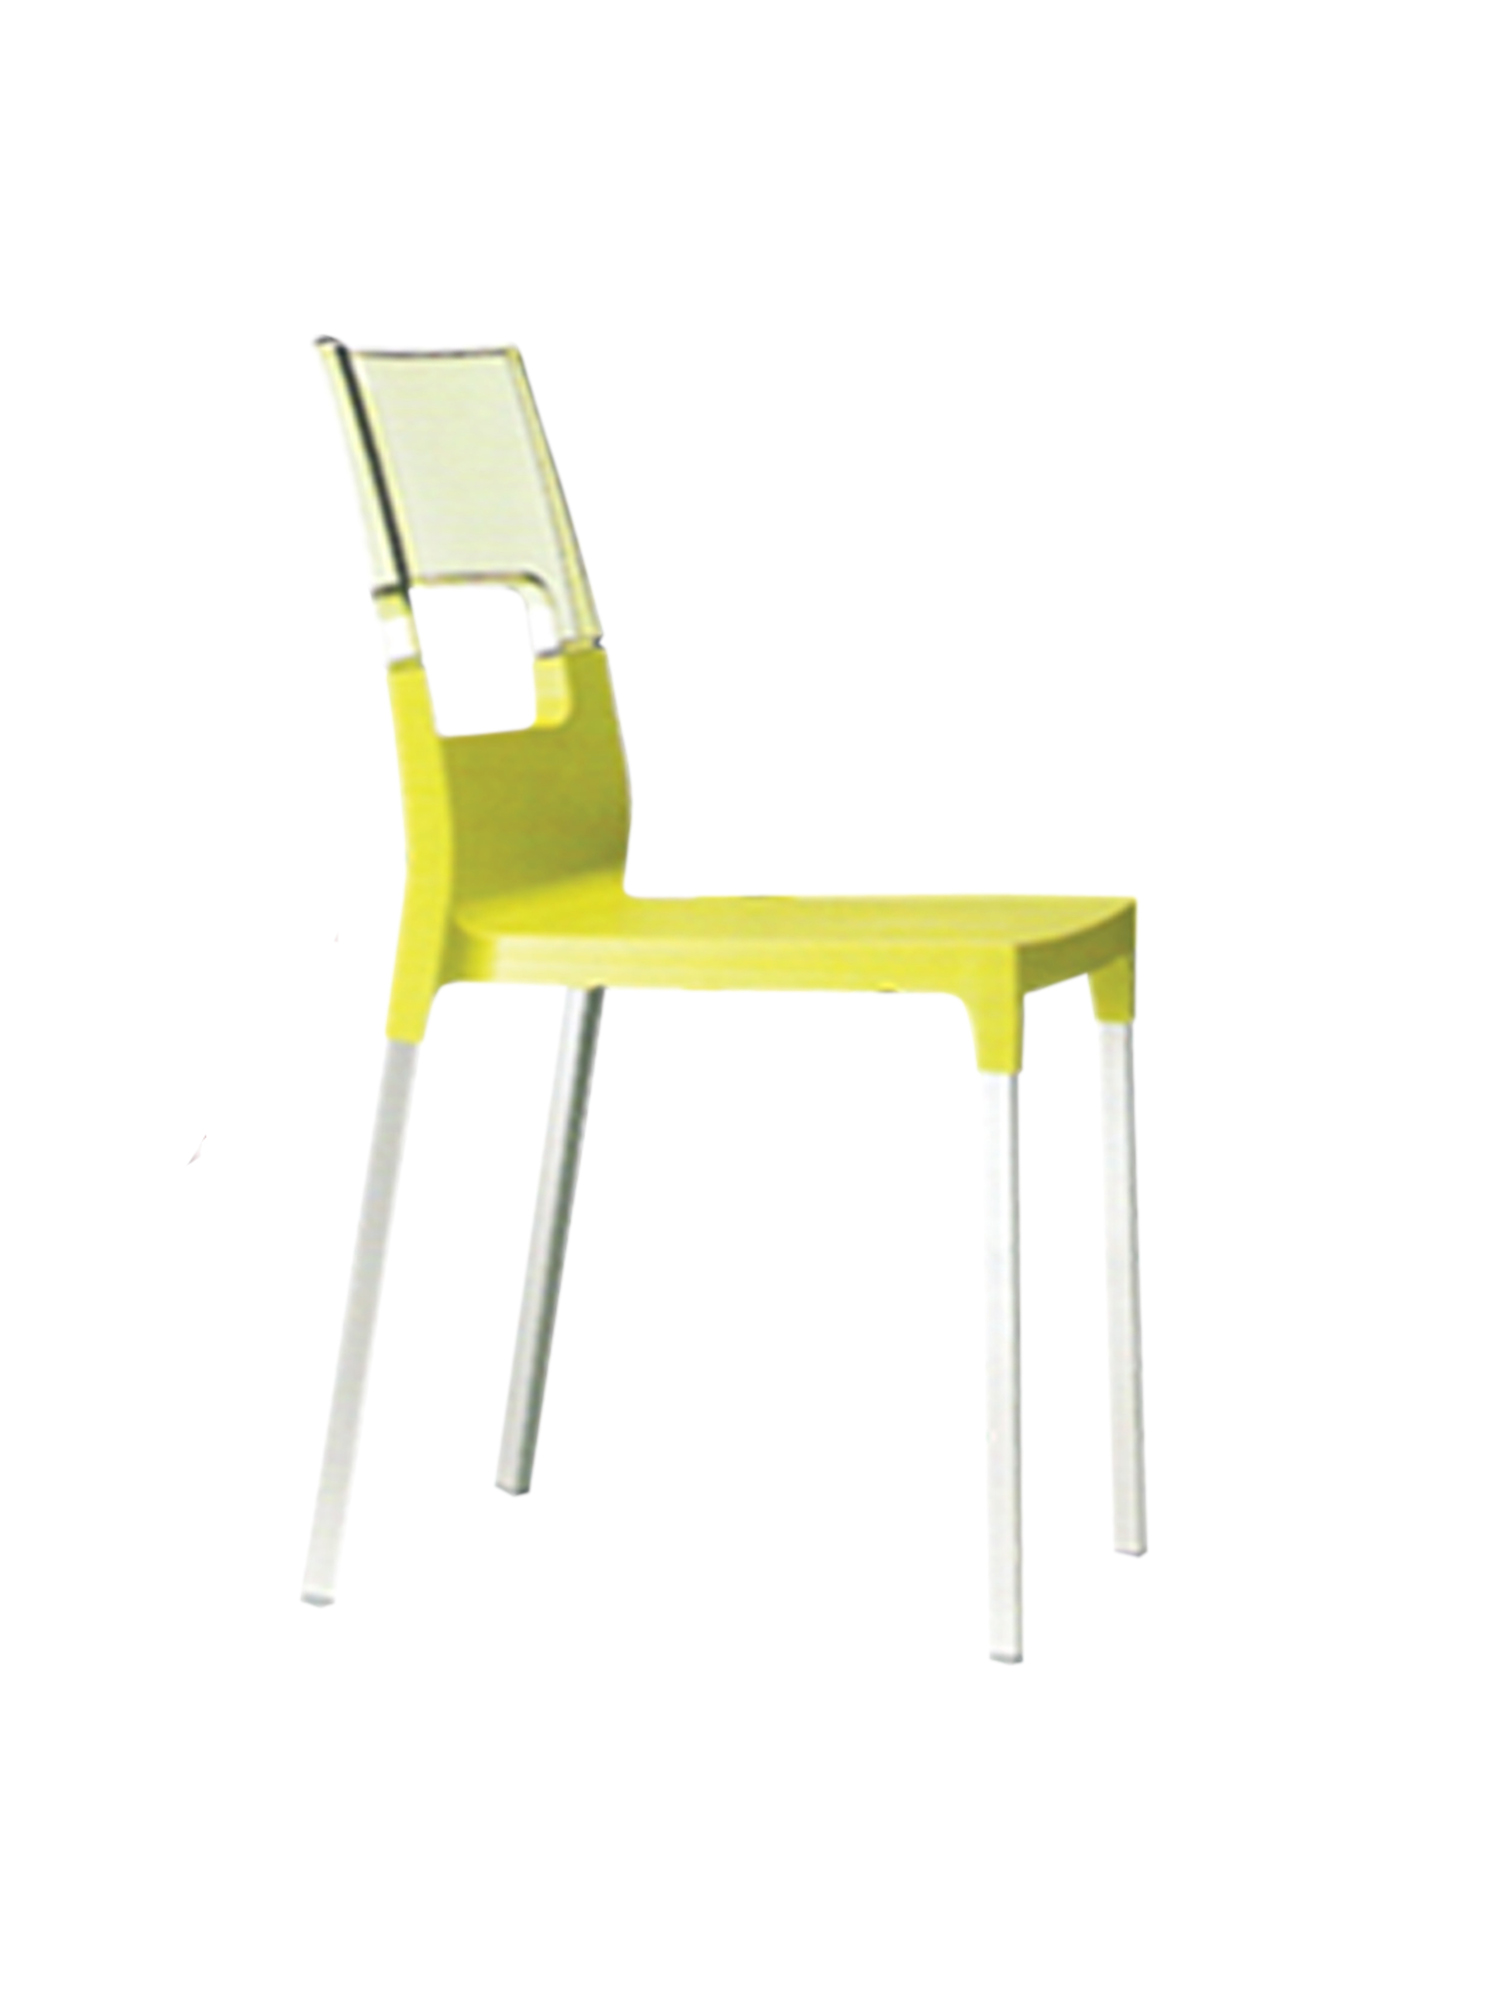 plastic see through chair patchwork furniture the cantor resin strata back shouts funky contemporary feel and look will add style to any outdoor setting available in multiple colors